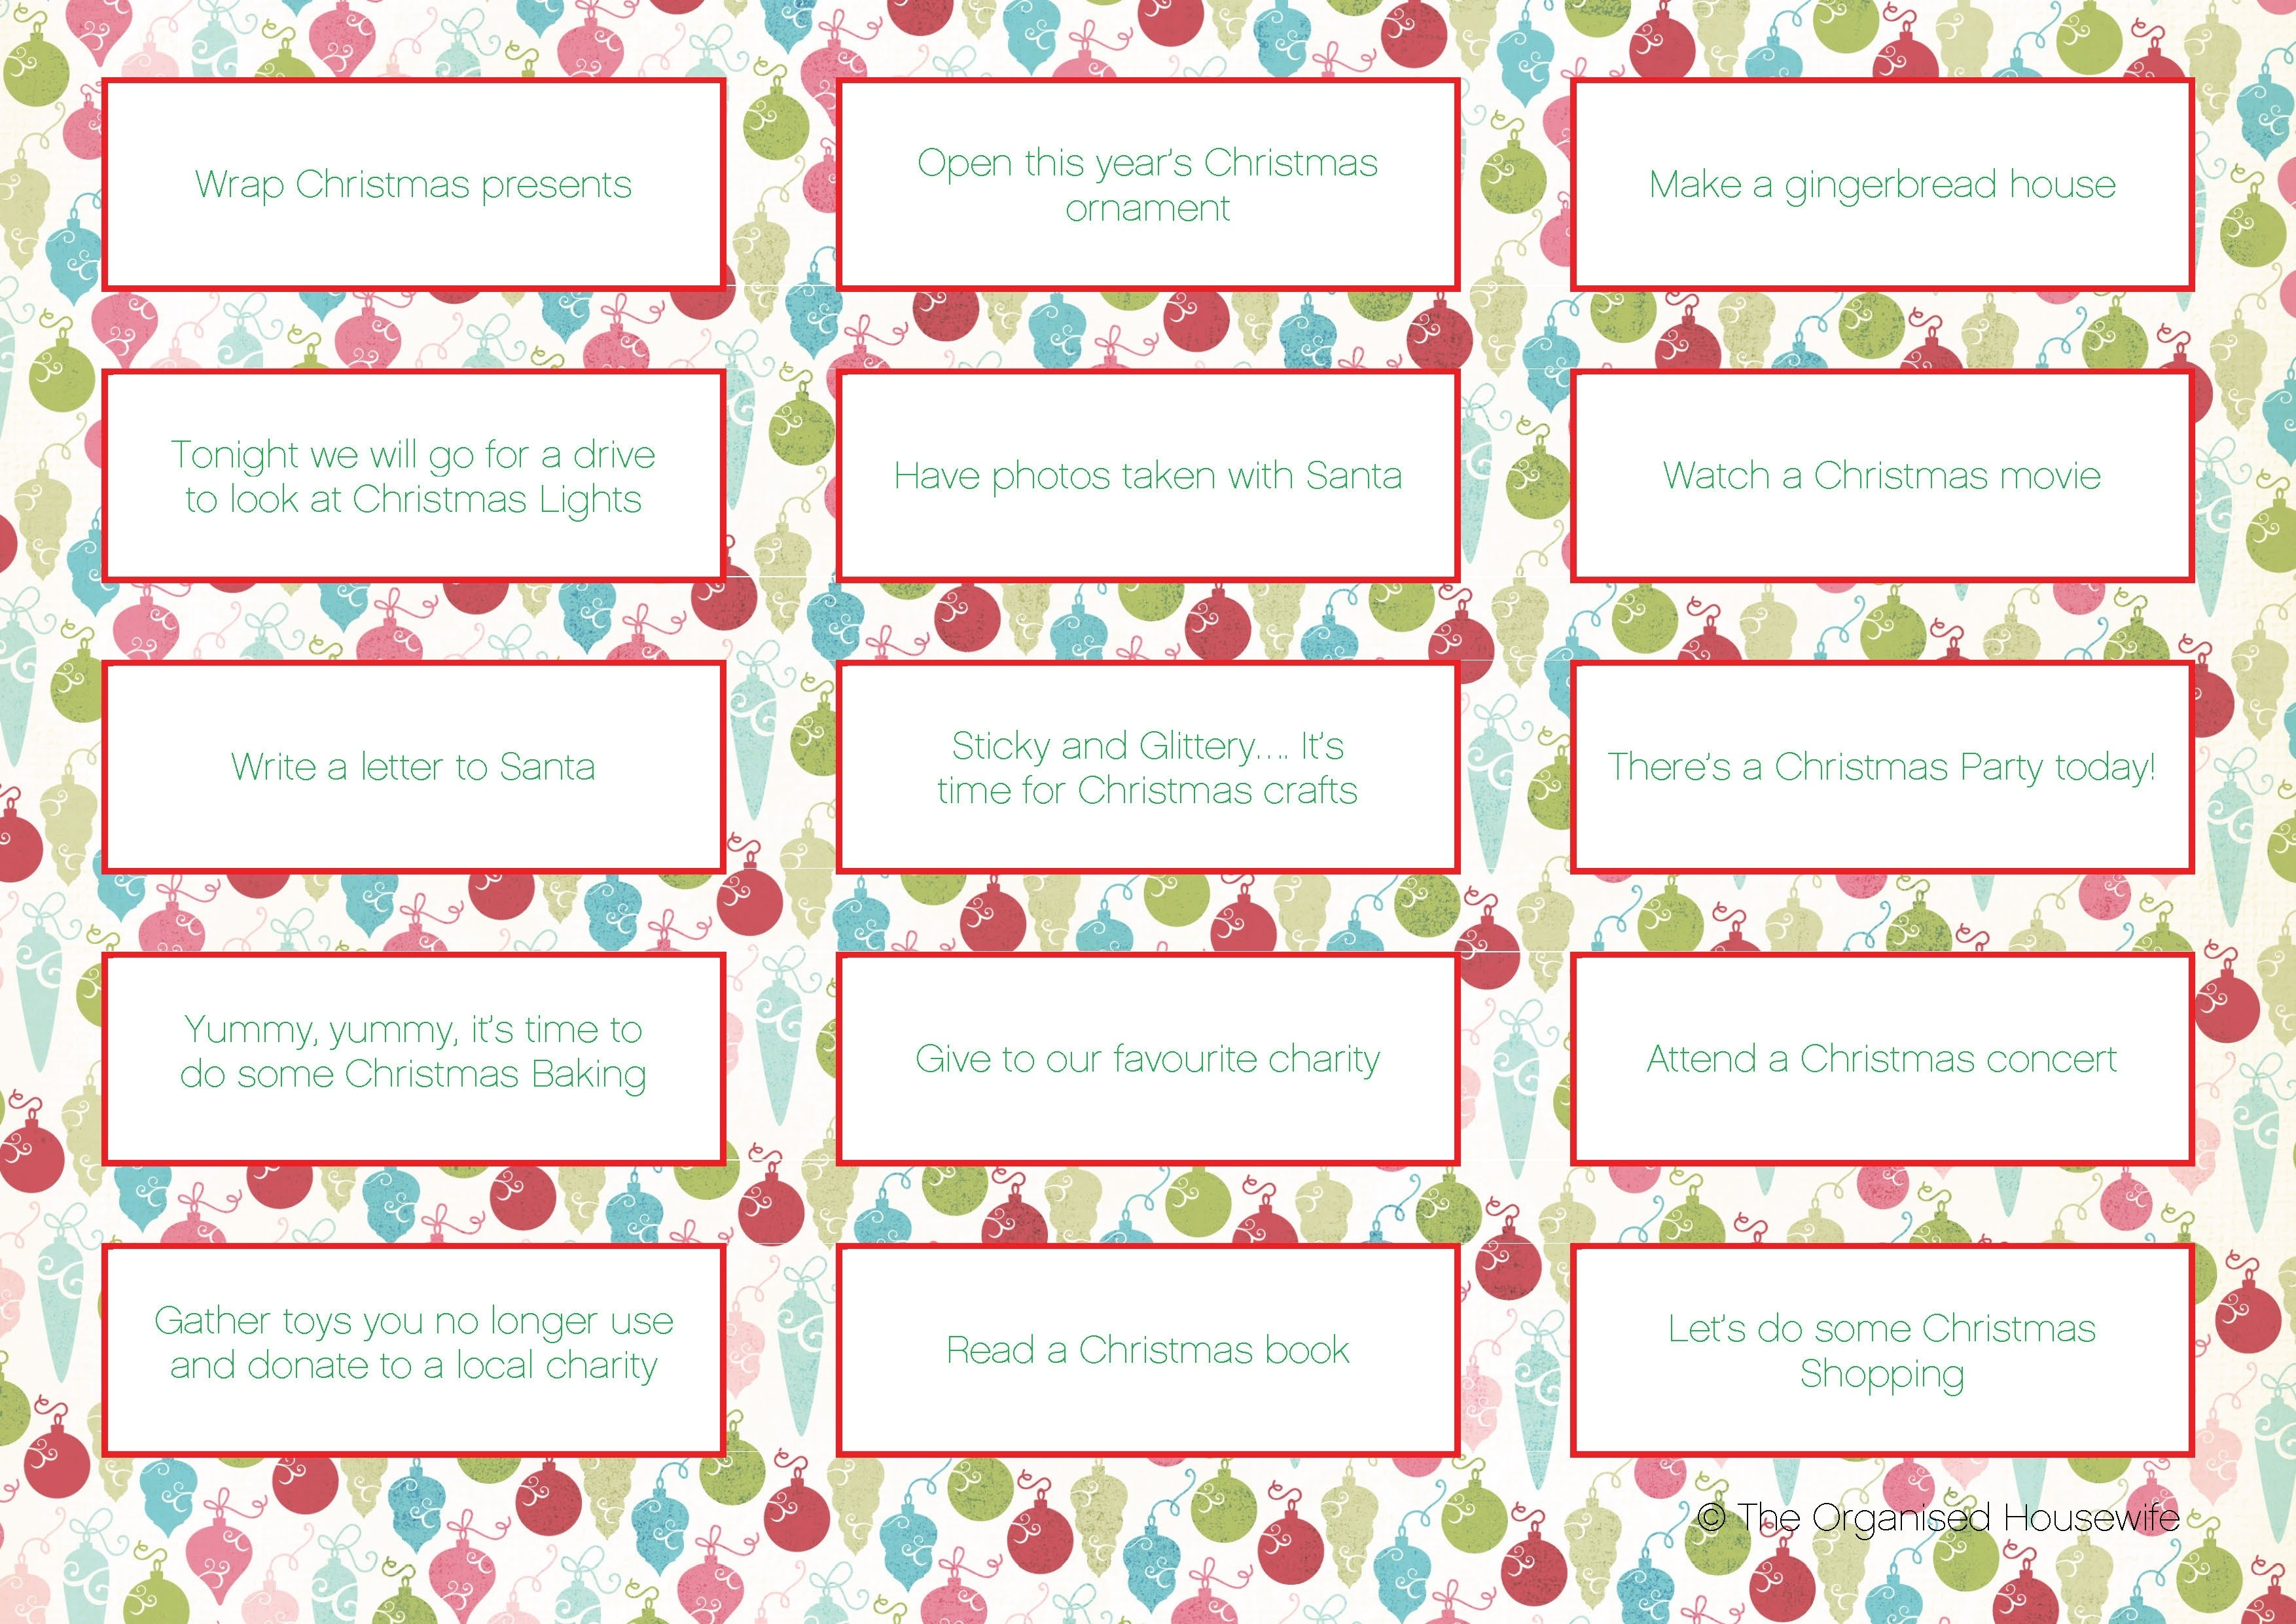 10 Fantastic Ideas For Advent Calendar Fillers items to put in advent calendar the organised housewife 1